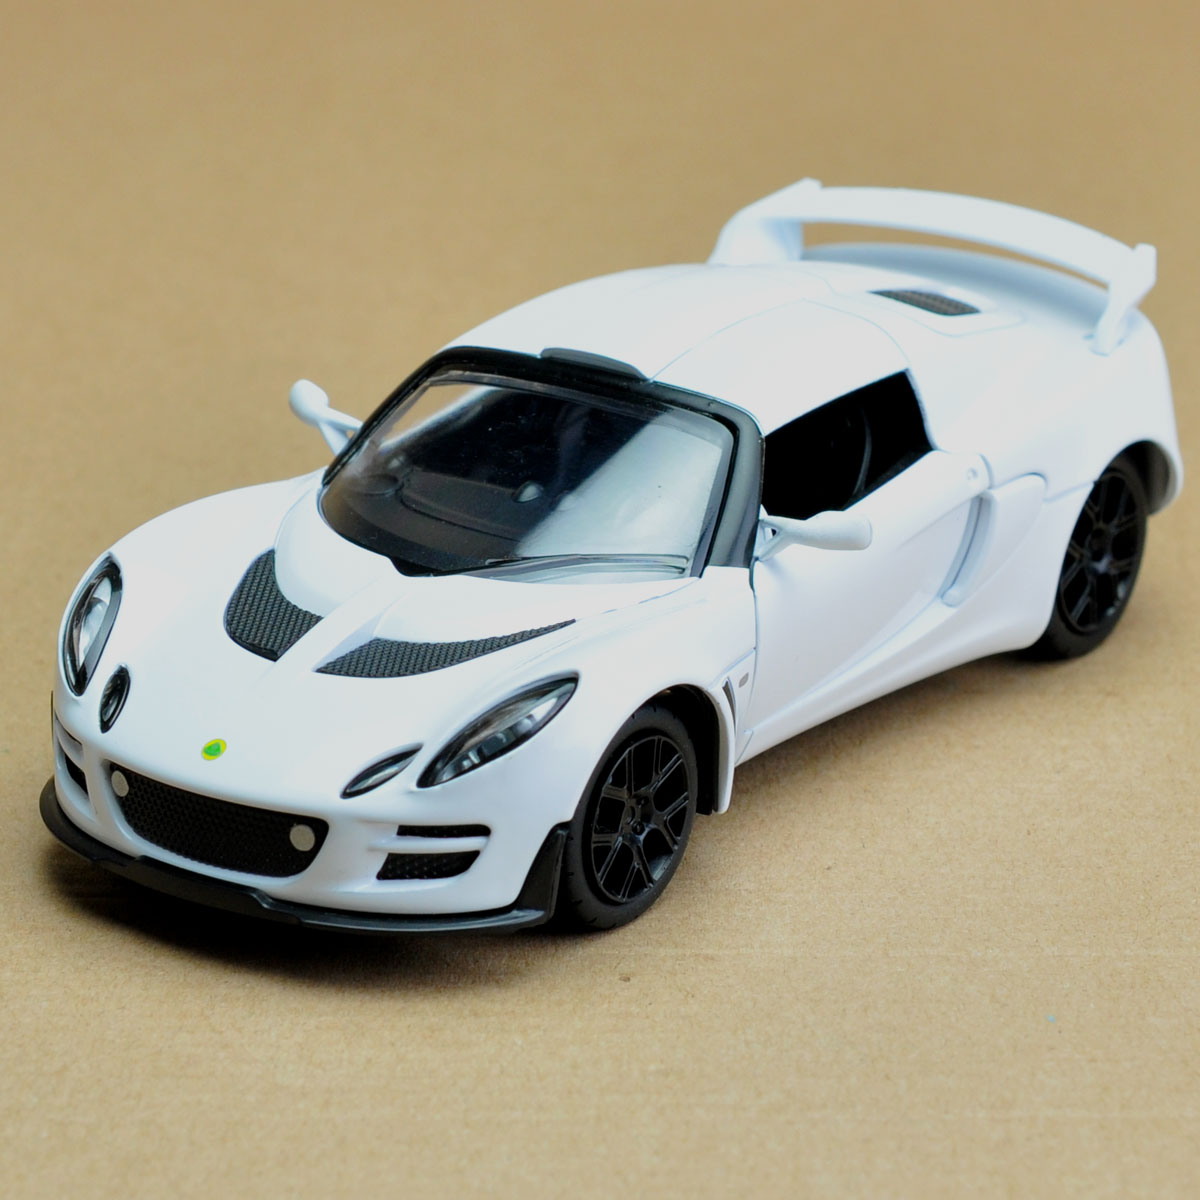 Supercar Alloy Hot Wheels Toy Cars Pull Back Model Car Car